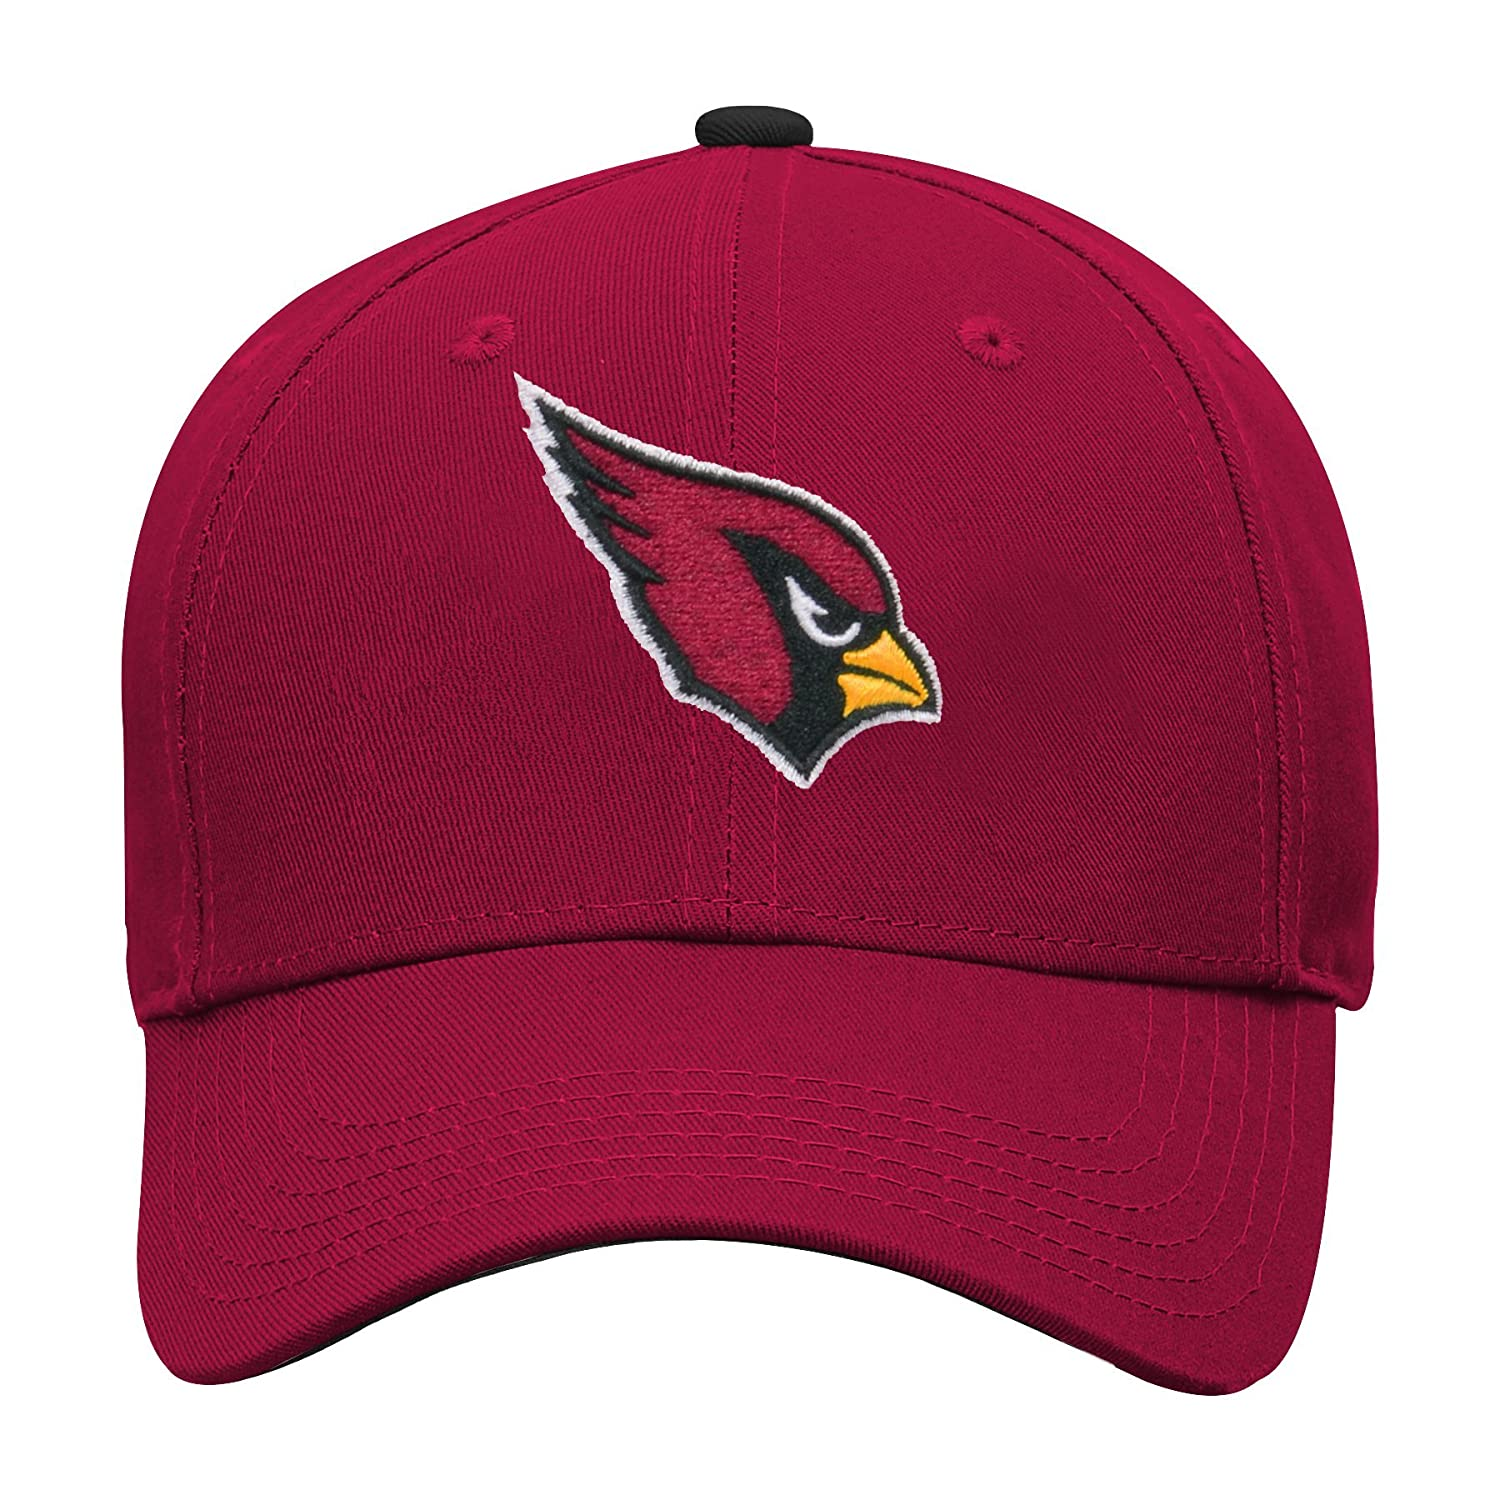 Outerstuff NFL Boys Arizona Cardinals Kids /& Youth Boys Structured Adjustable Hat